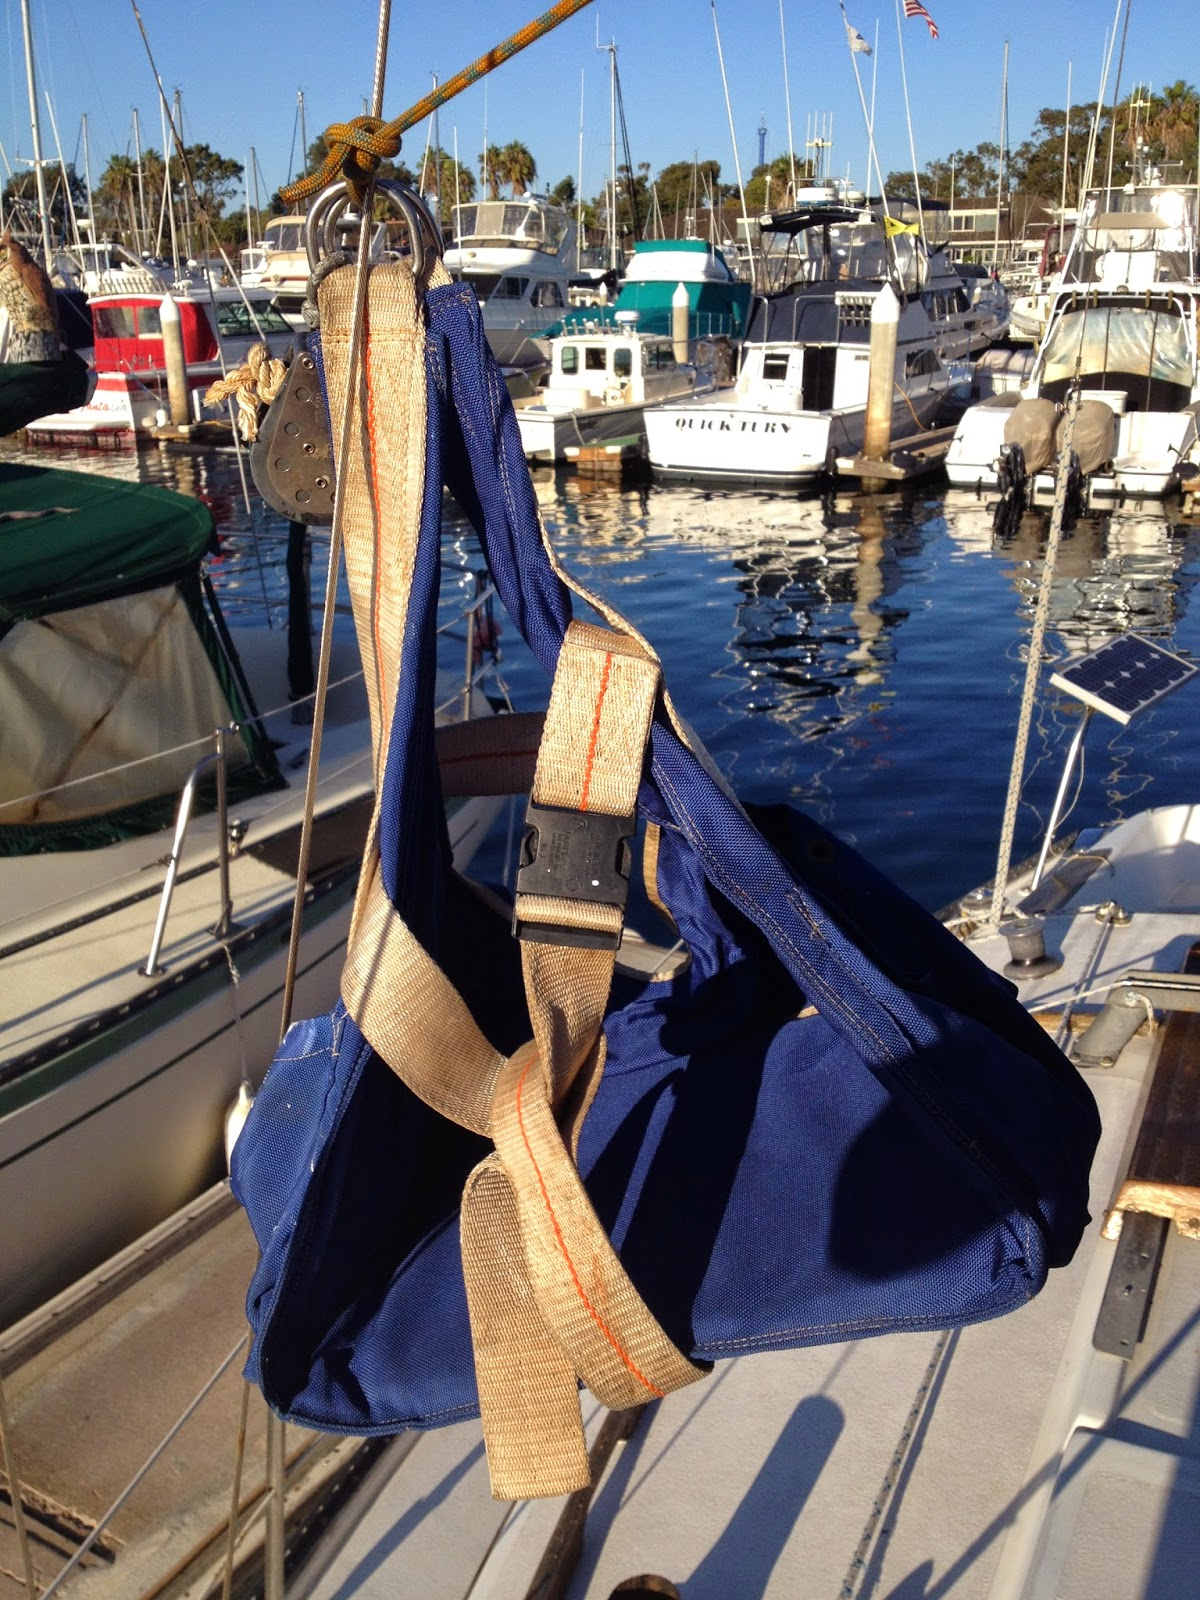 bosun chair for climbing mast